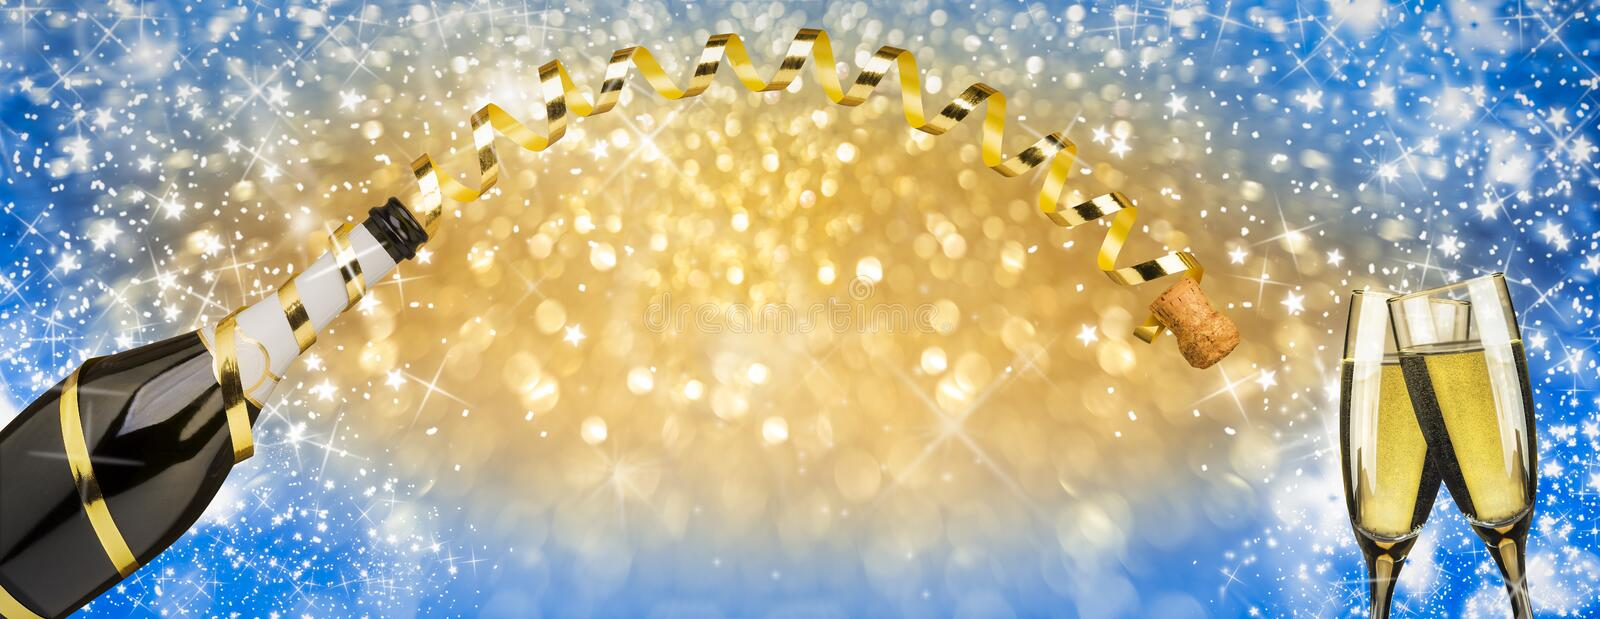 New year toast flutes champagne, golden ribbon and fireworks sparkle background royalty free stock photo